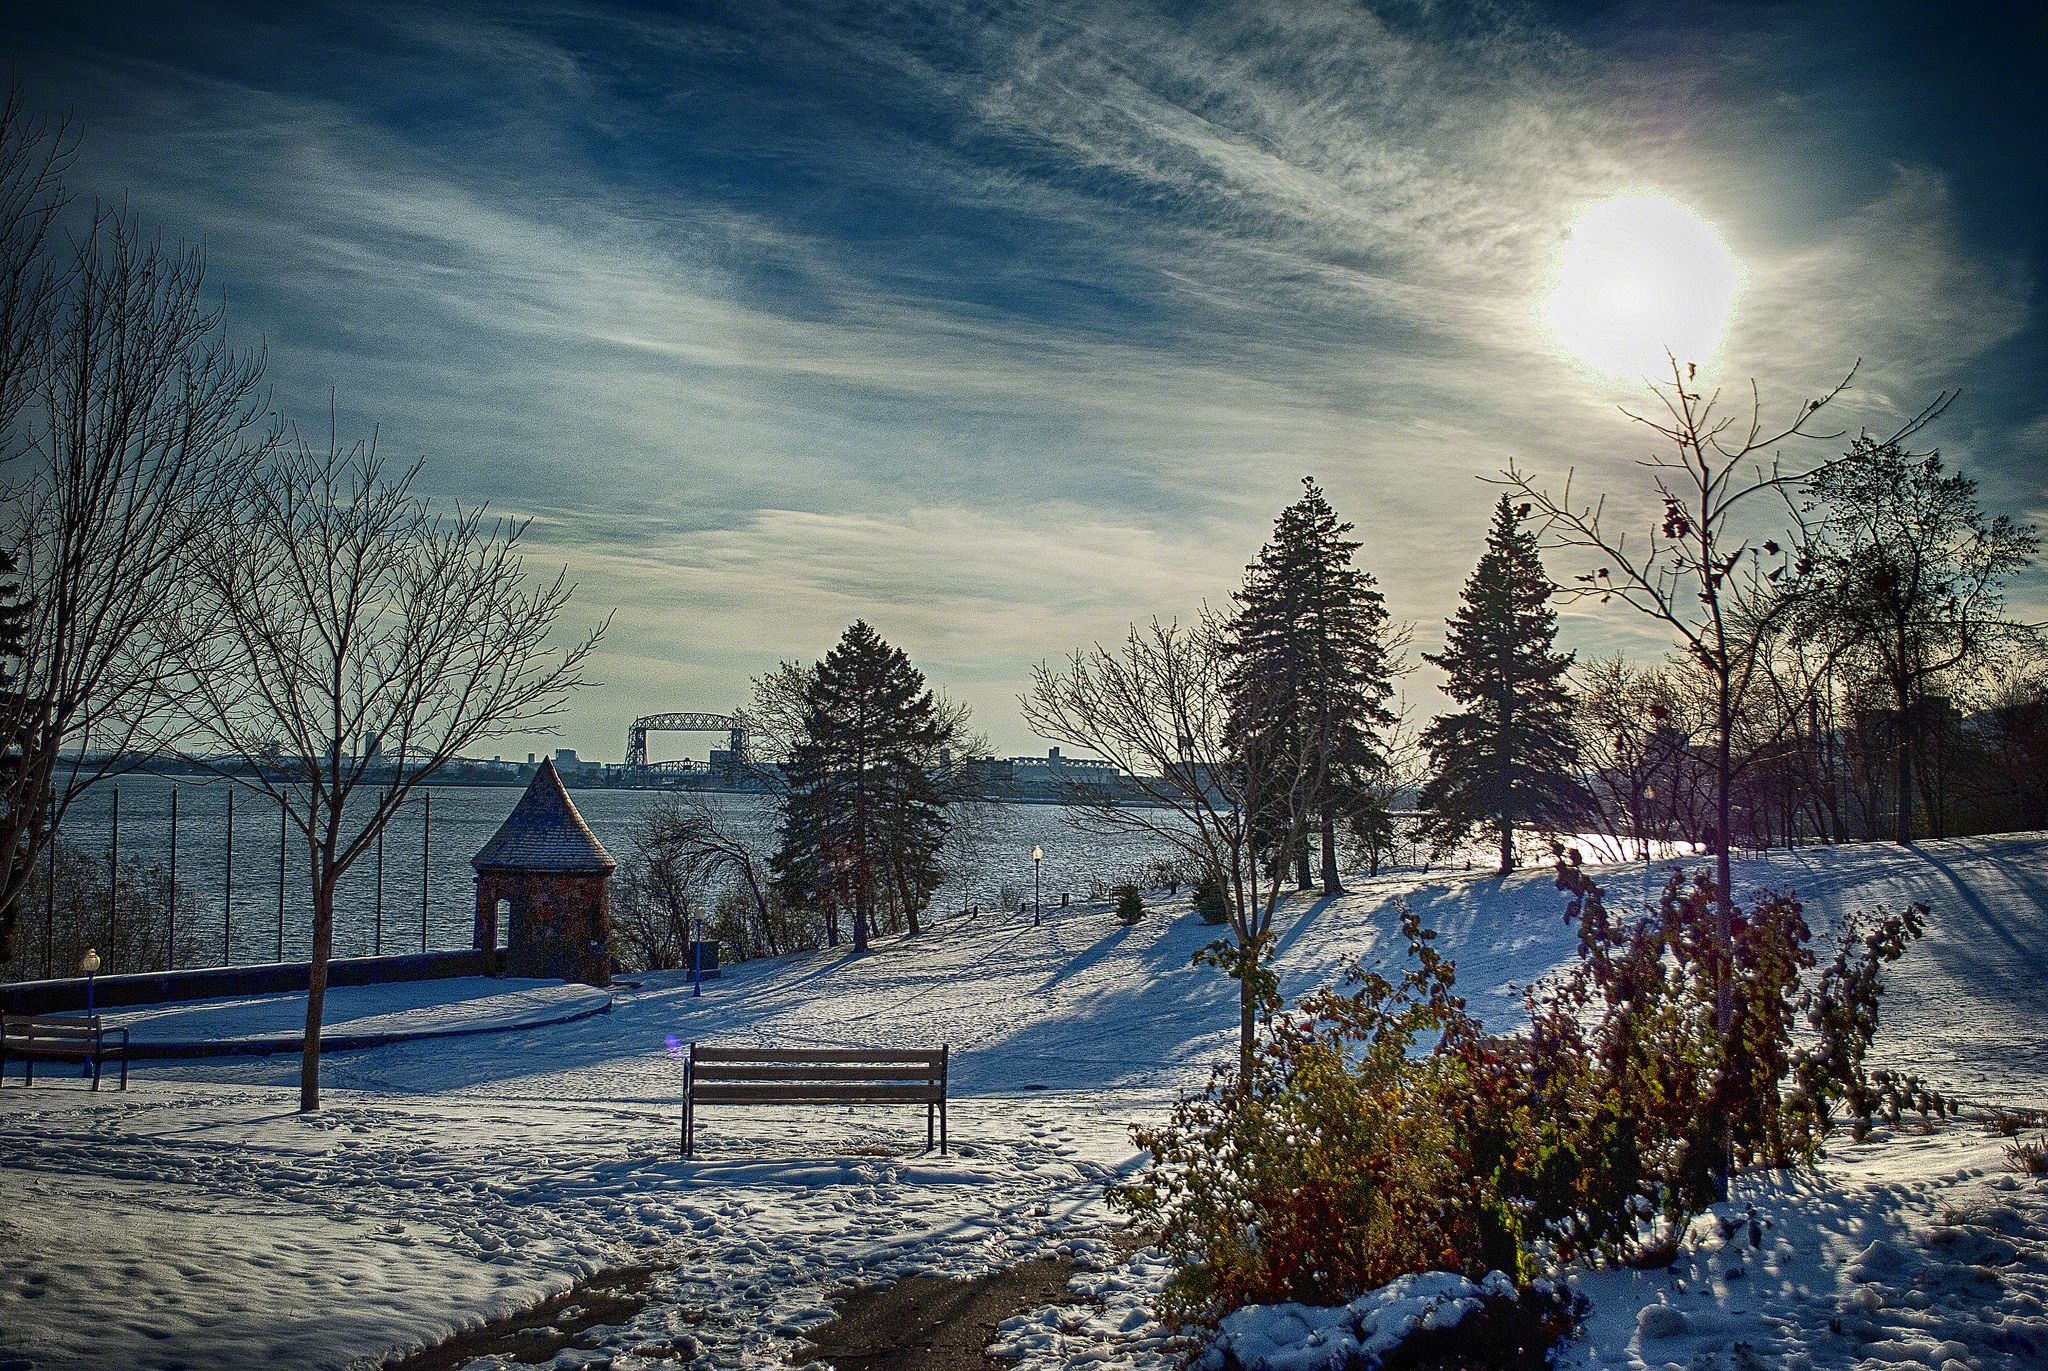 Leif erikson park in winter with images beautiful park